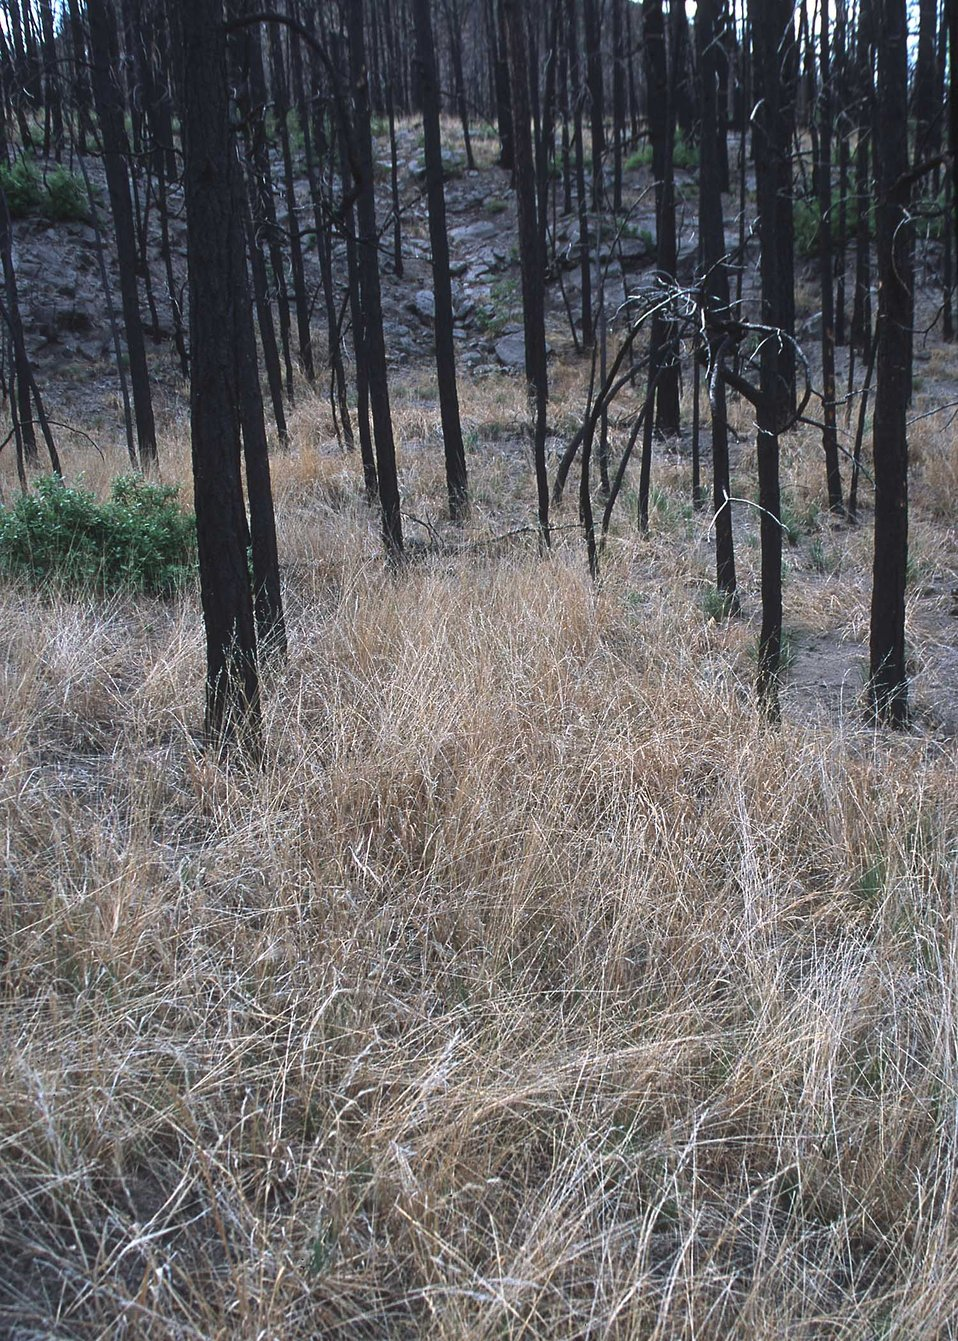 First years growth of emergency reseeding after the Los Alamos fires.  Some of the species planted for erosion control and habitat improveme